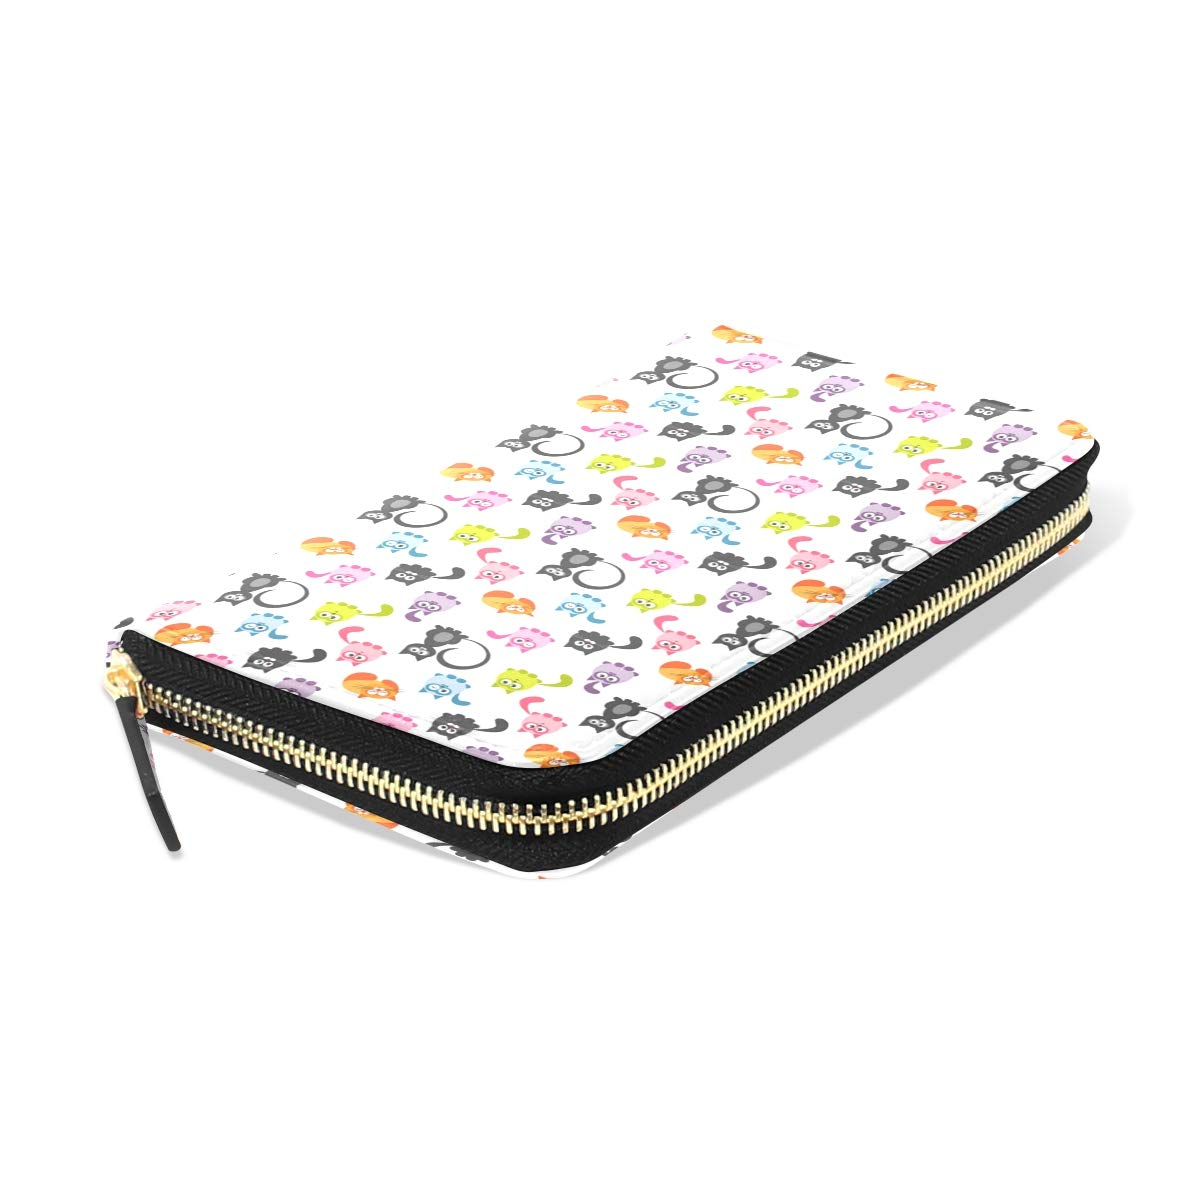 Women Cute Colorful Cats Leather Wallet Large Capacity Zipper Travel Wristlet Bags Clutch Cellphone Bag